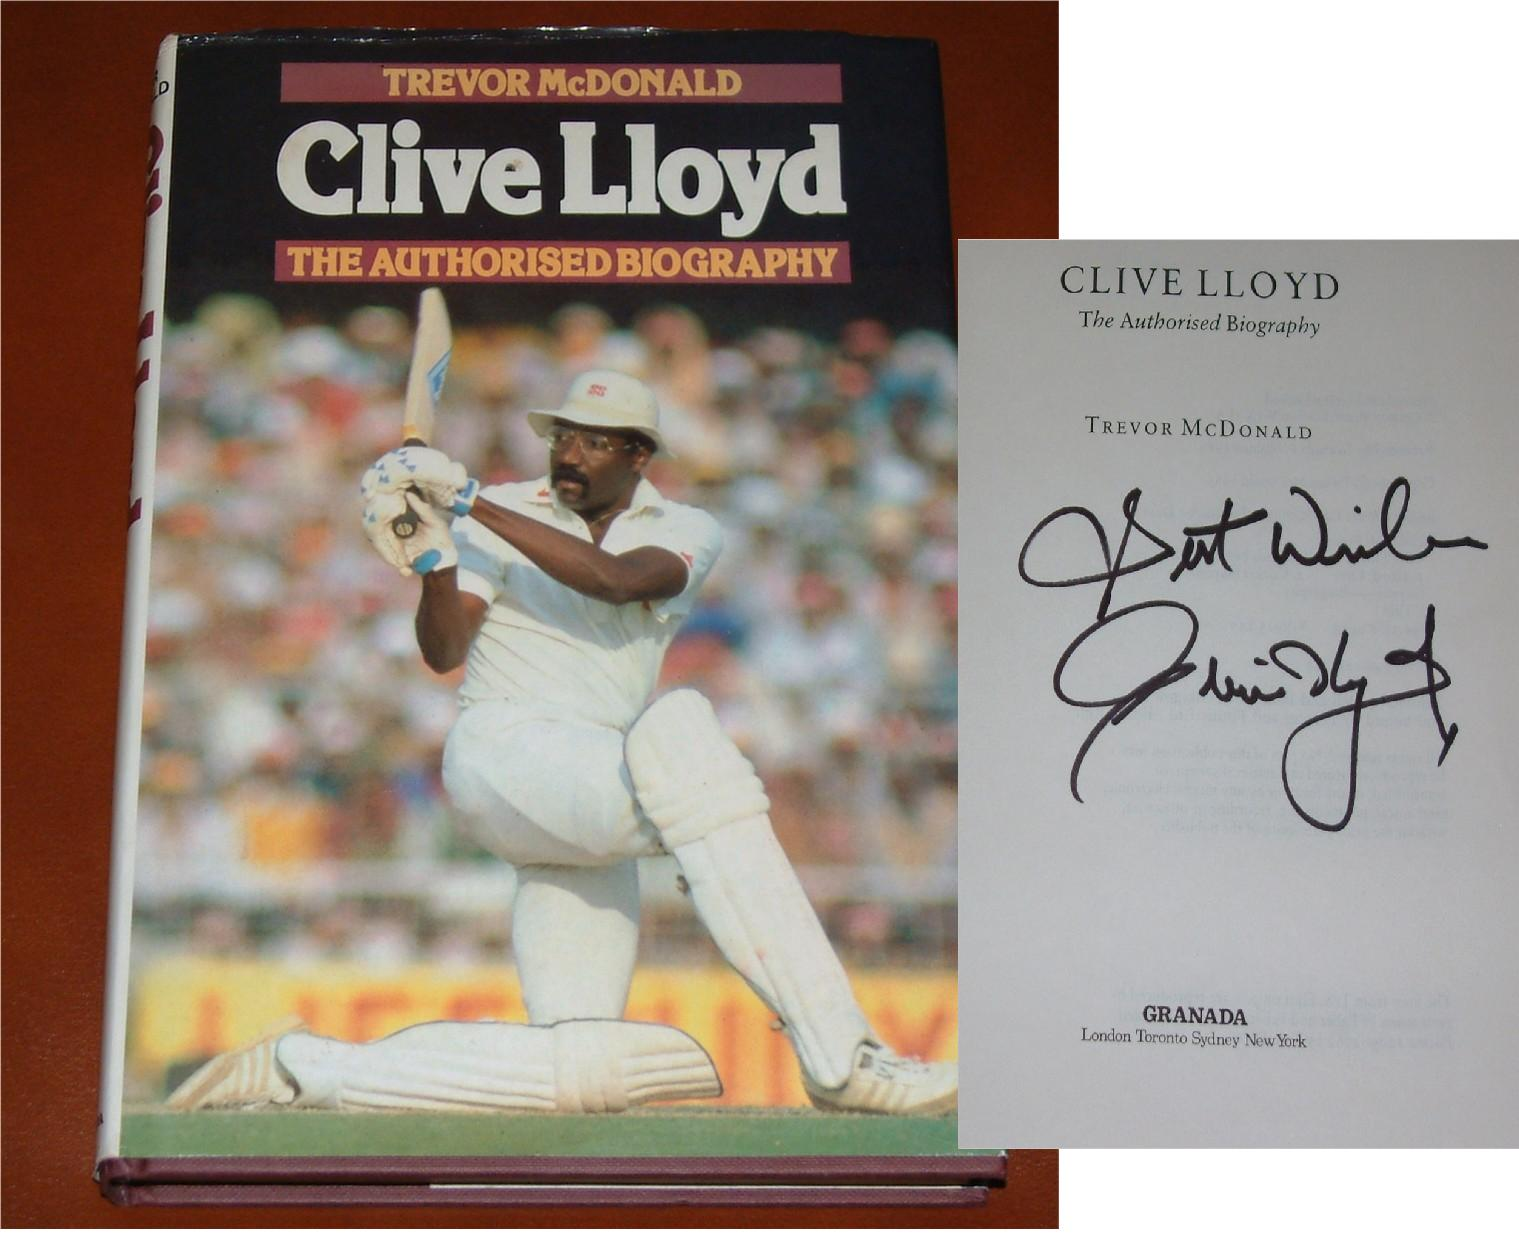 Signed on the inside title page by the former West Indian captain Clive Lloyd. COA - 0410000143